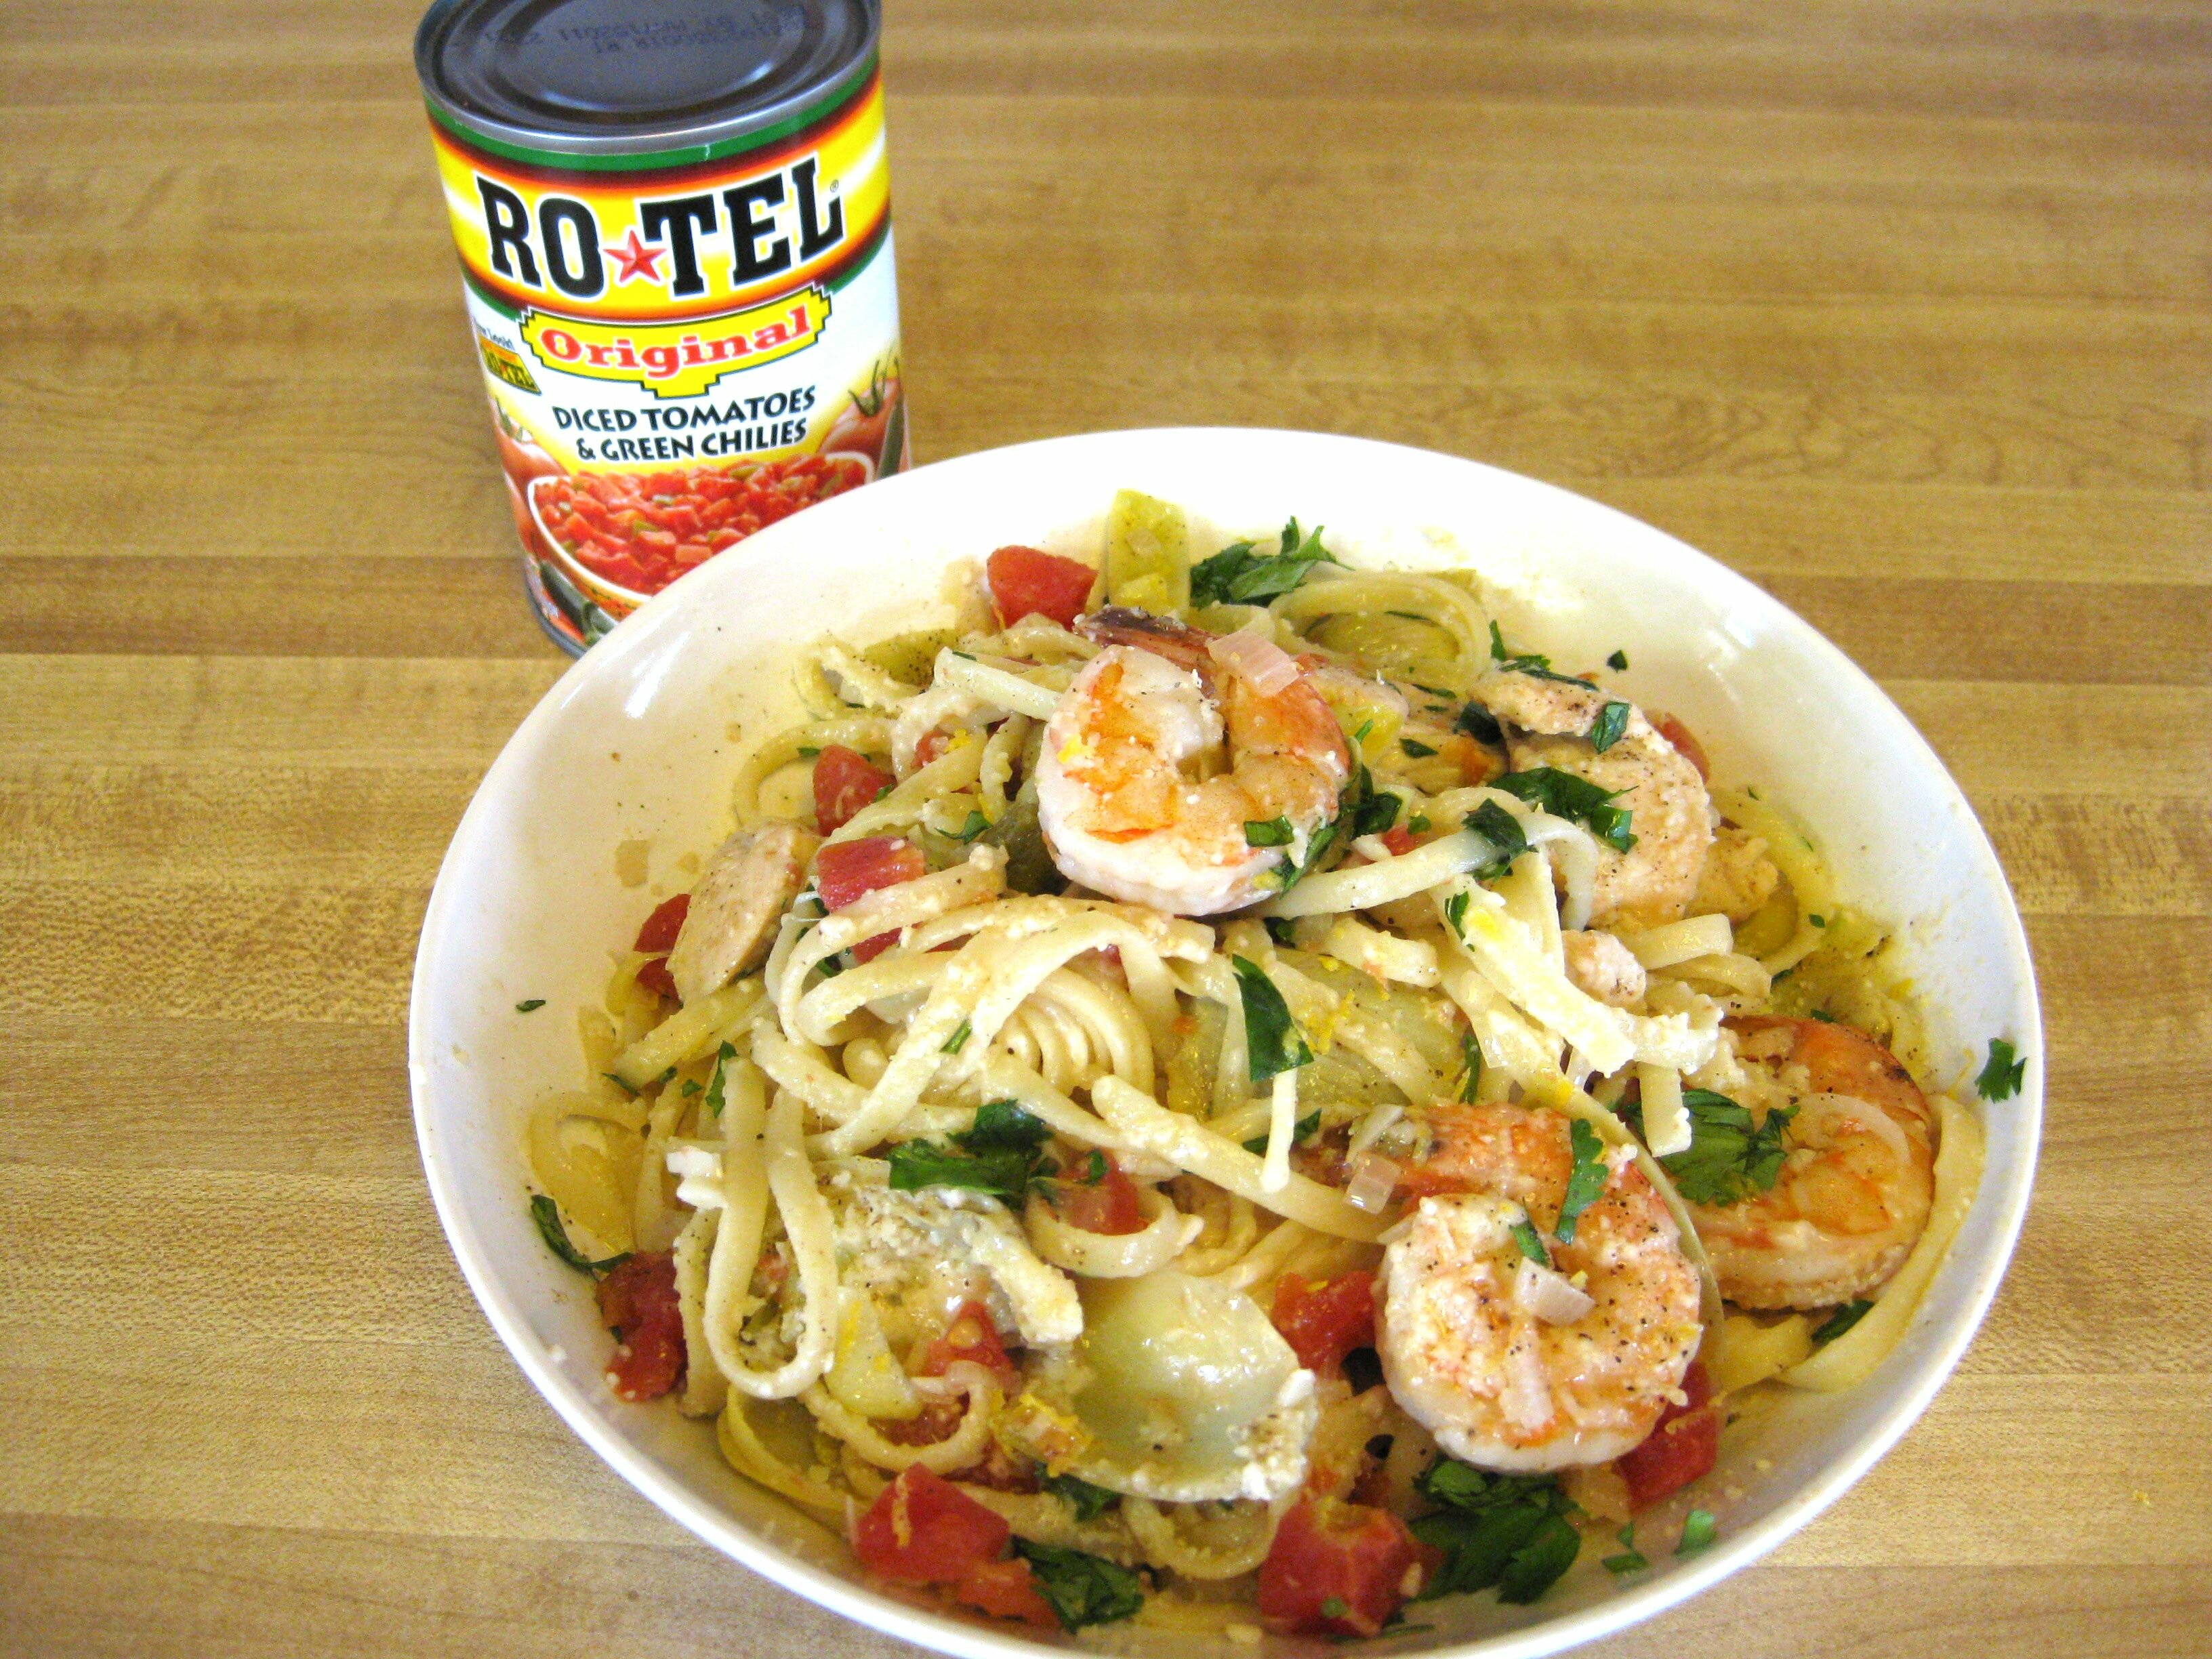 Linguine Ro*Tel with Chicken and Shrimp